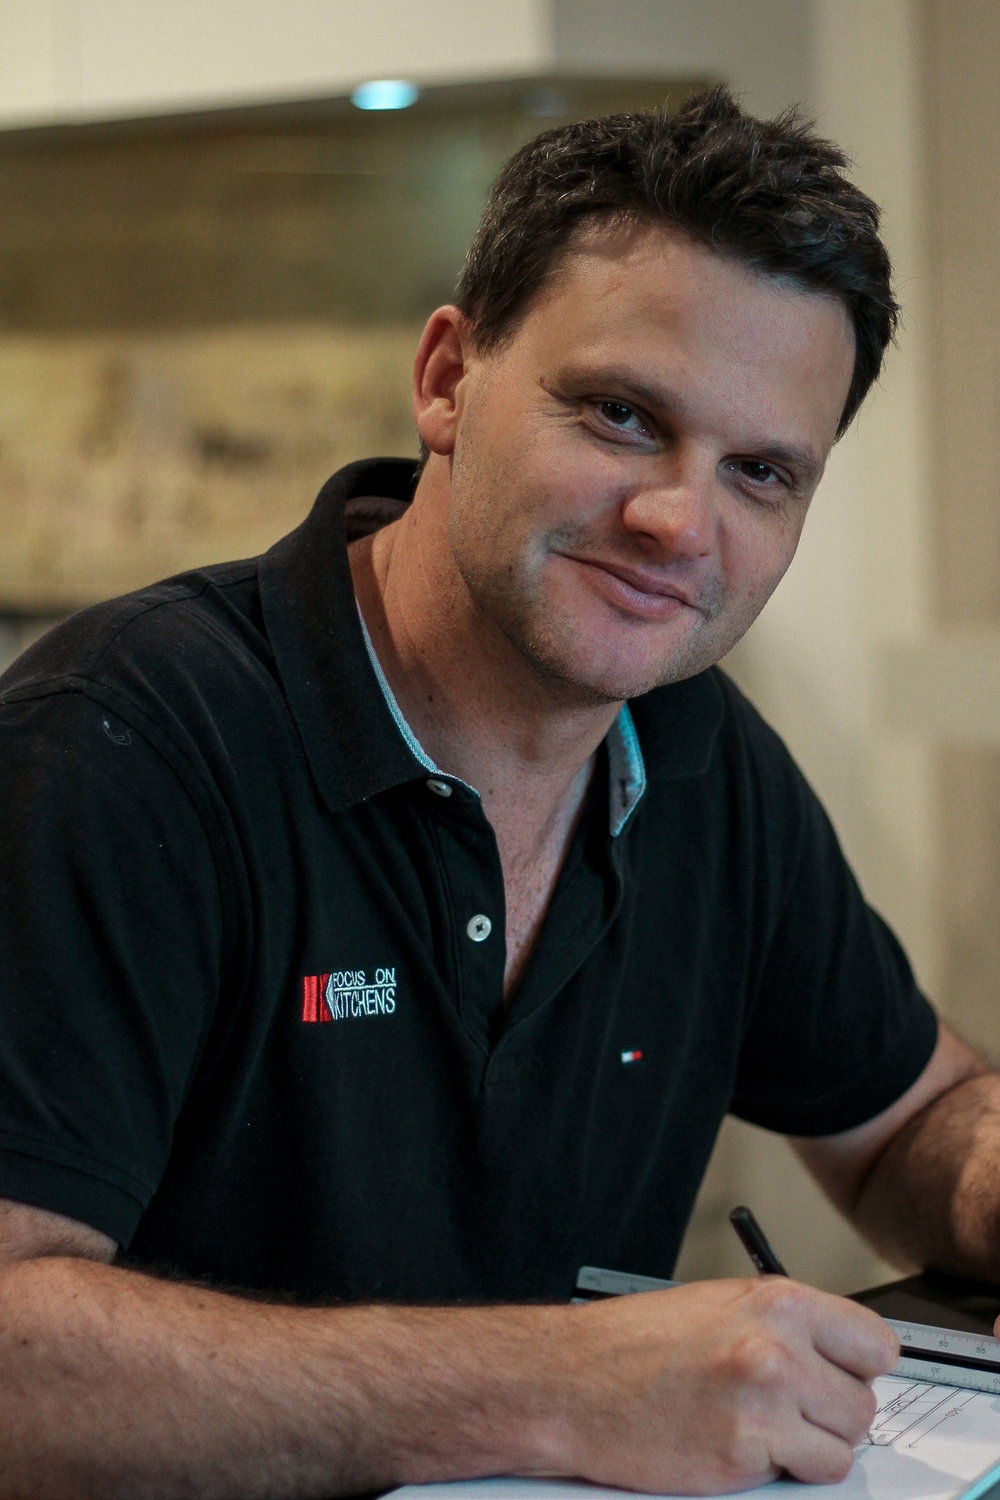 Craig Pukallus - Director - Owner & Co-Director Craig started his cabinet making career at Focus on Kitchens over 20 years ago. Craig will be one of your first contacts as he helps you with designing your new joinery. His main aim is to work closely with you, bringing your cabinetry visions to life.